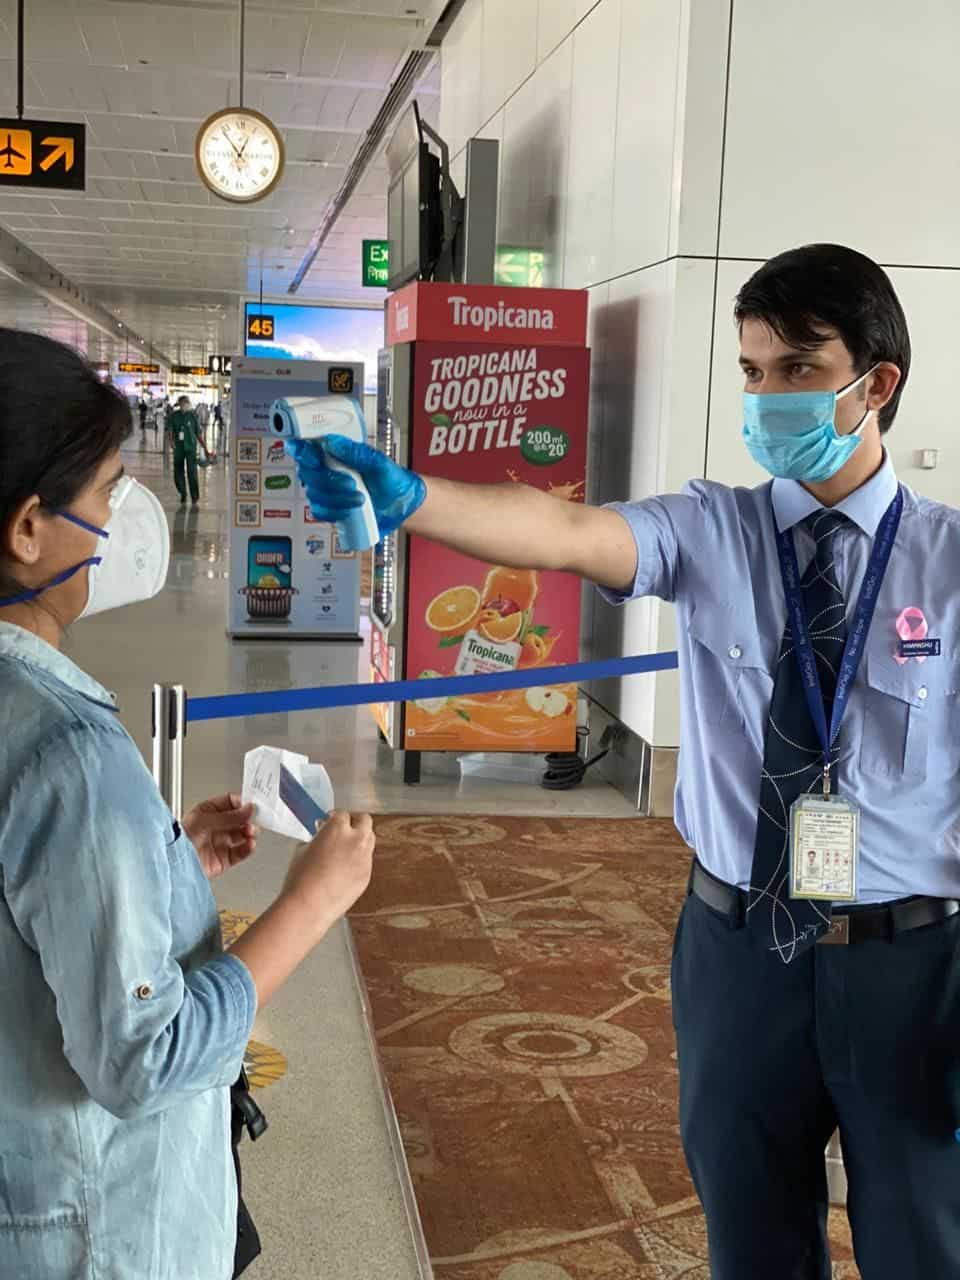 Airline officials checking temperature before a passenger boards the flight. Airports will now also maintain staff near washrooms, X-ray machines, conveyor belts to implement social distancing among passengers.